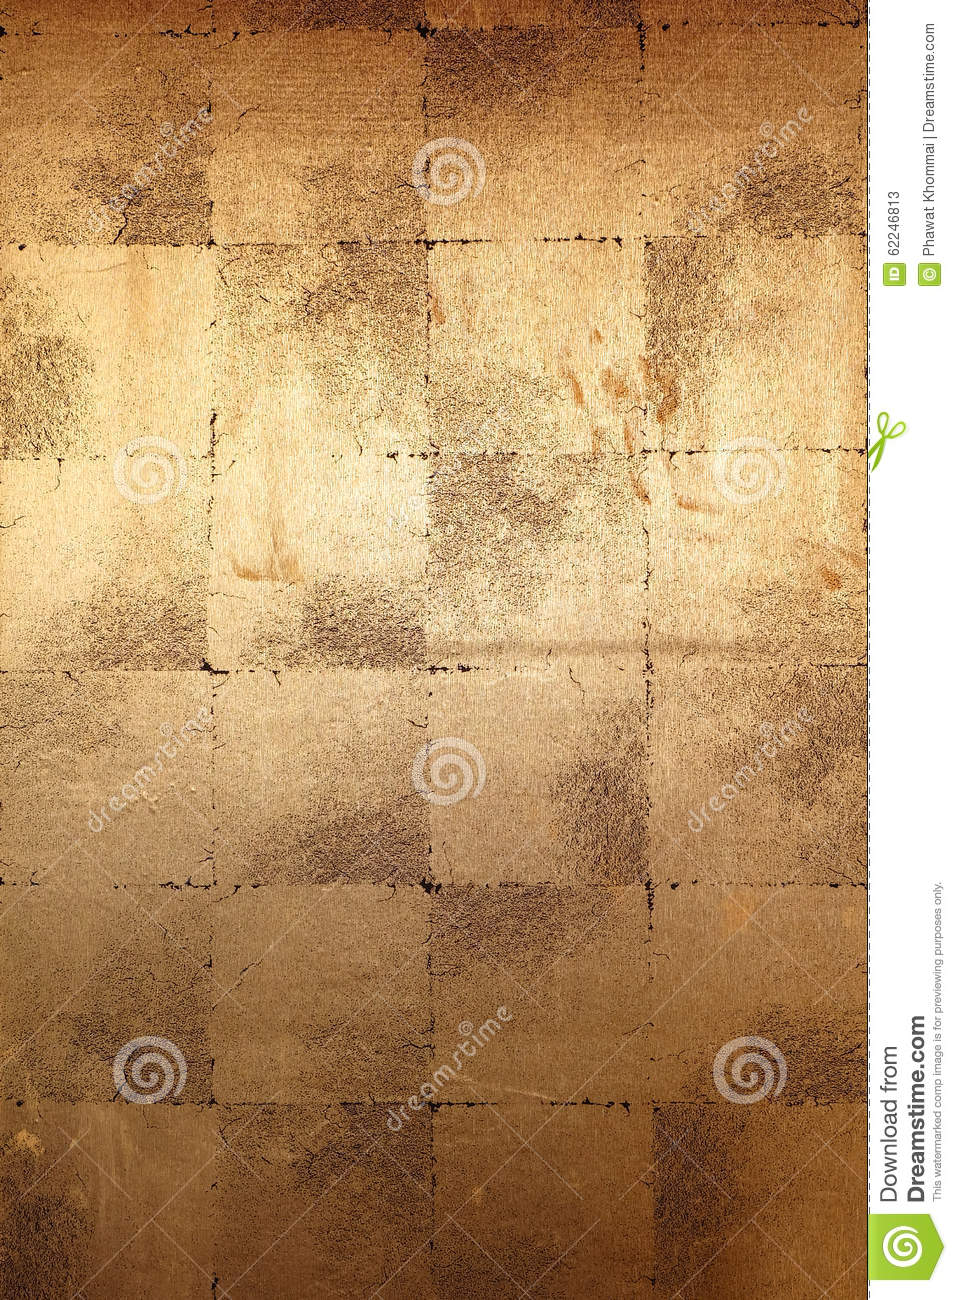 Gold wall background stock image. Image of abstract, metal - 62246813